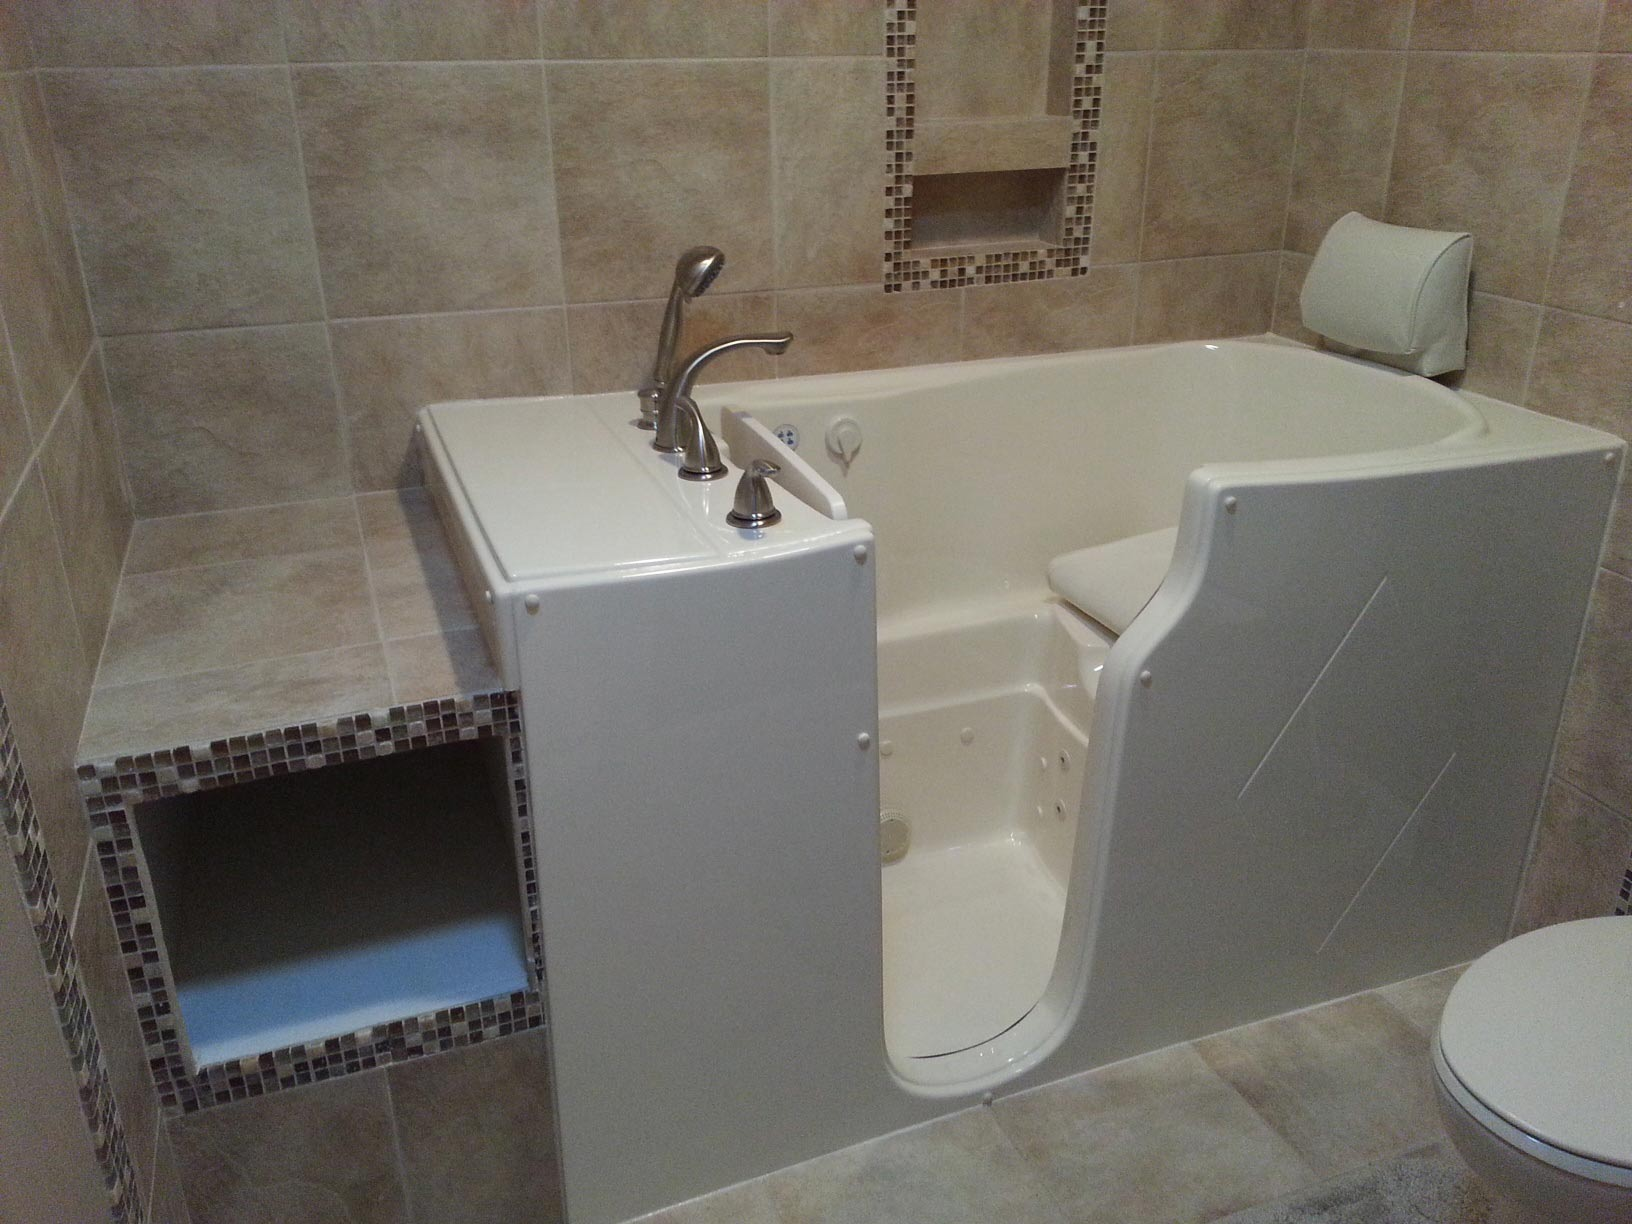 Walk In Tub Manufacturers. theratub walk in tubs image Walk In Tub Reviews  Ratings and Comparisons